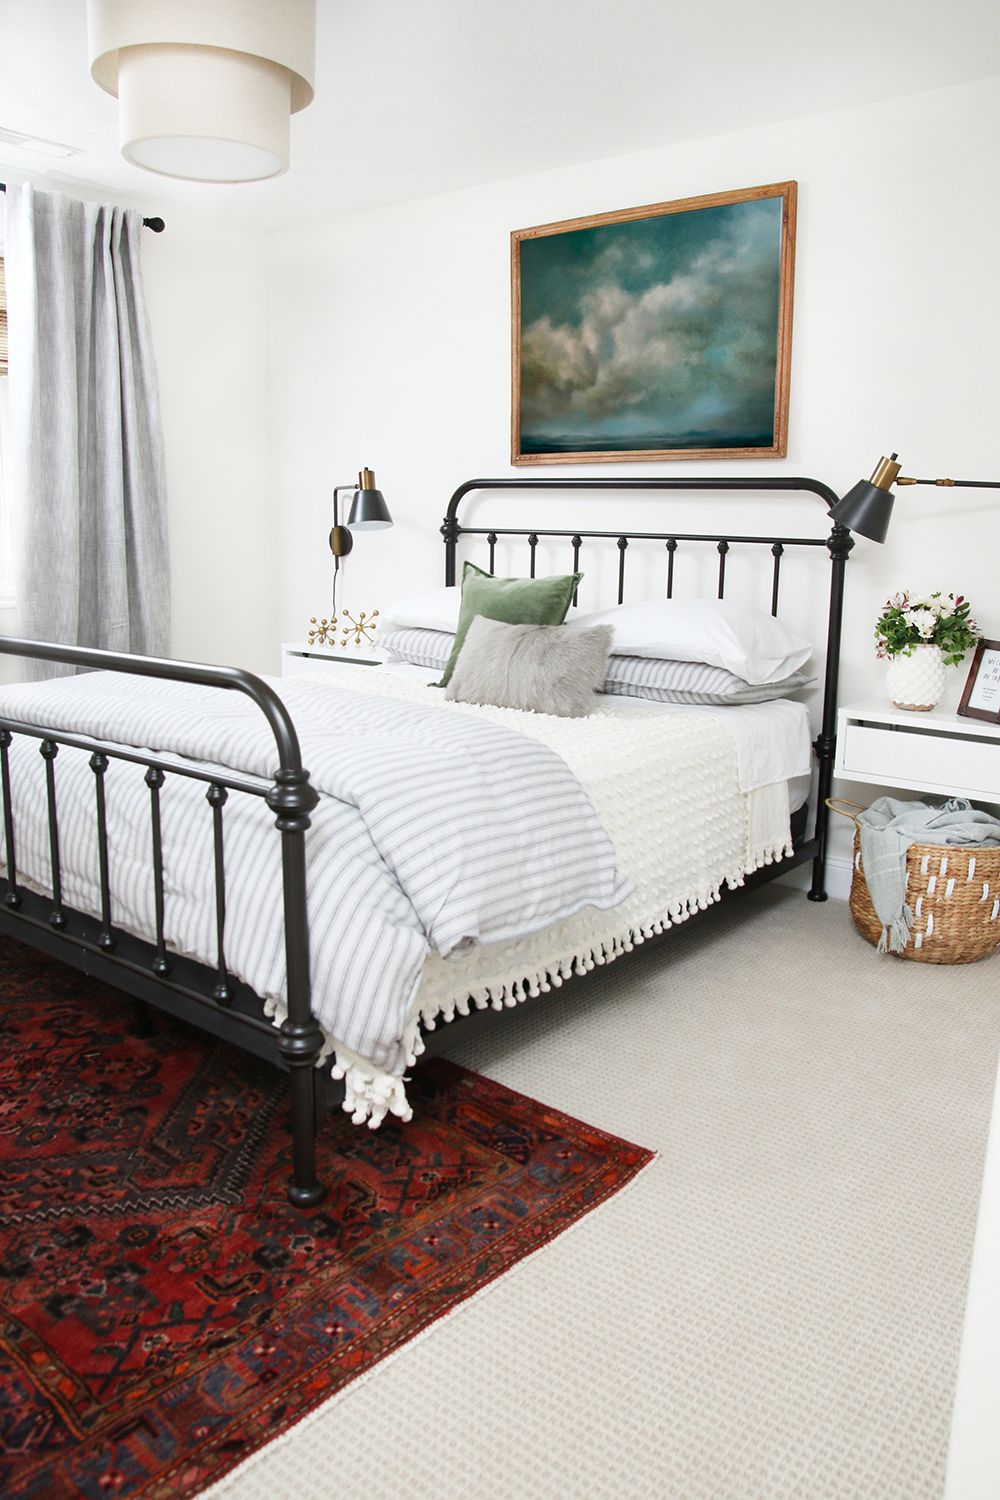 Best That's A Wrap On Guest Room 2 Home Decor Bedroom 640 x 480